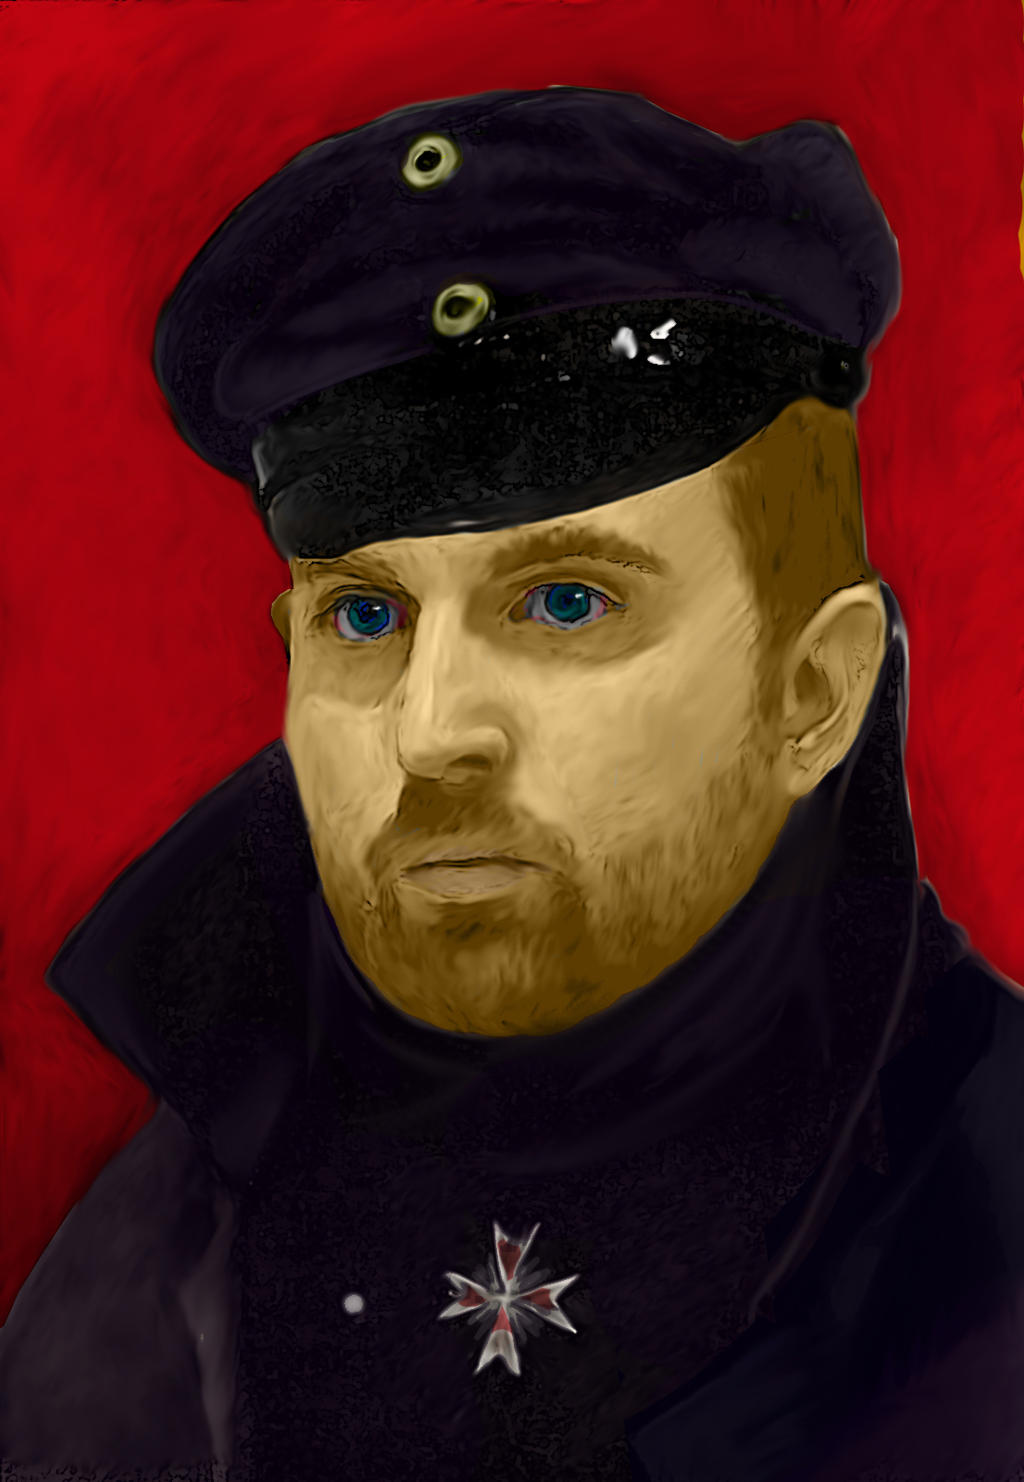 Self-portrait cameo with the Red Baron by BrainBlueArts